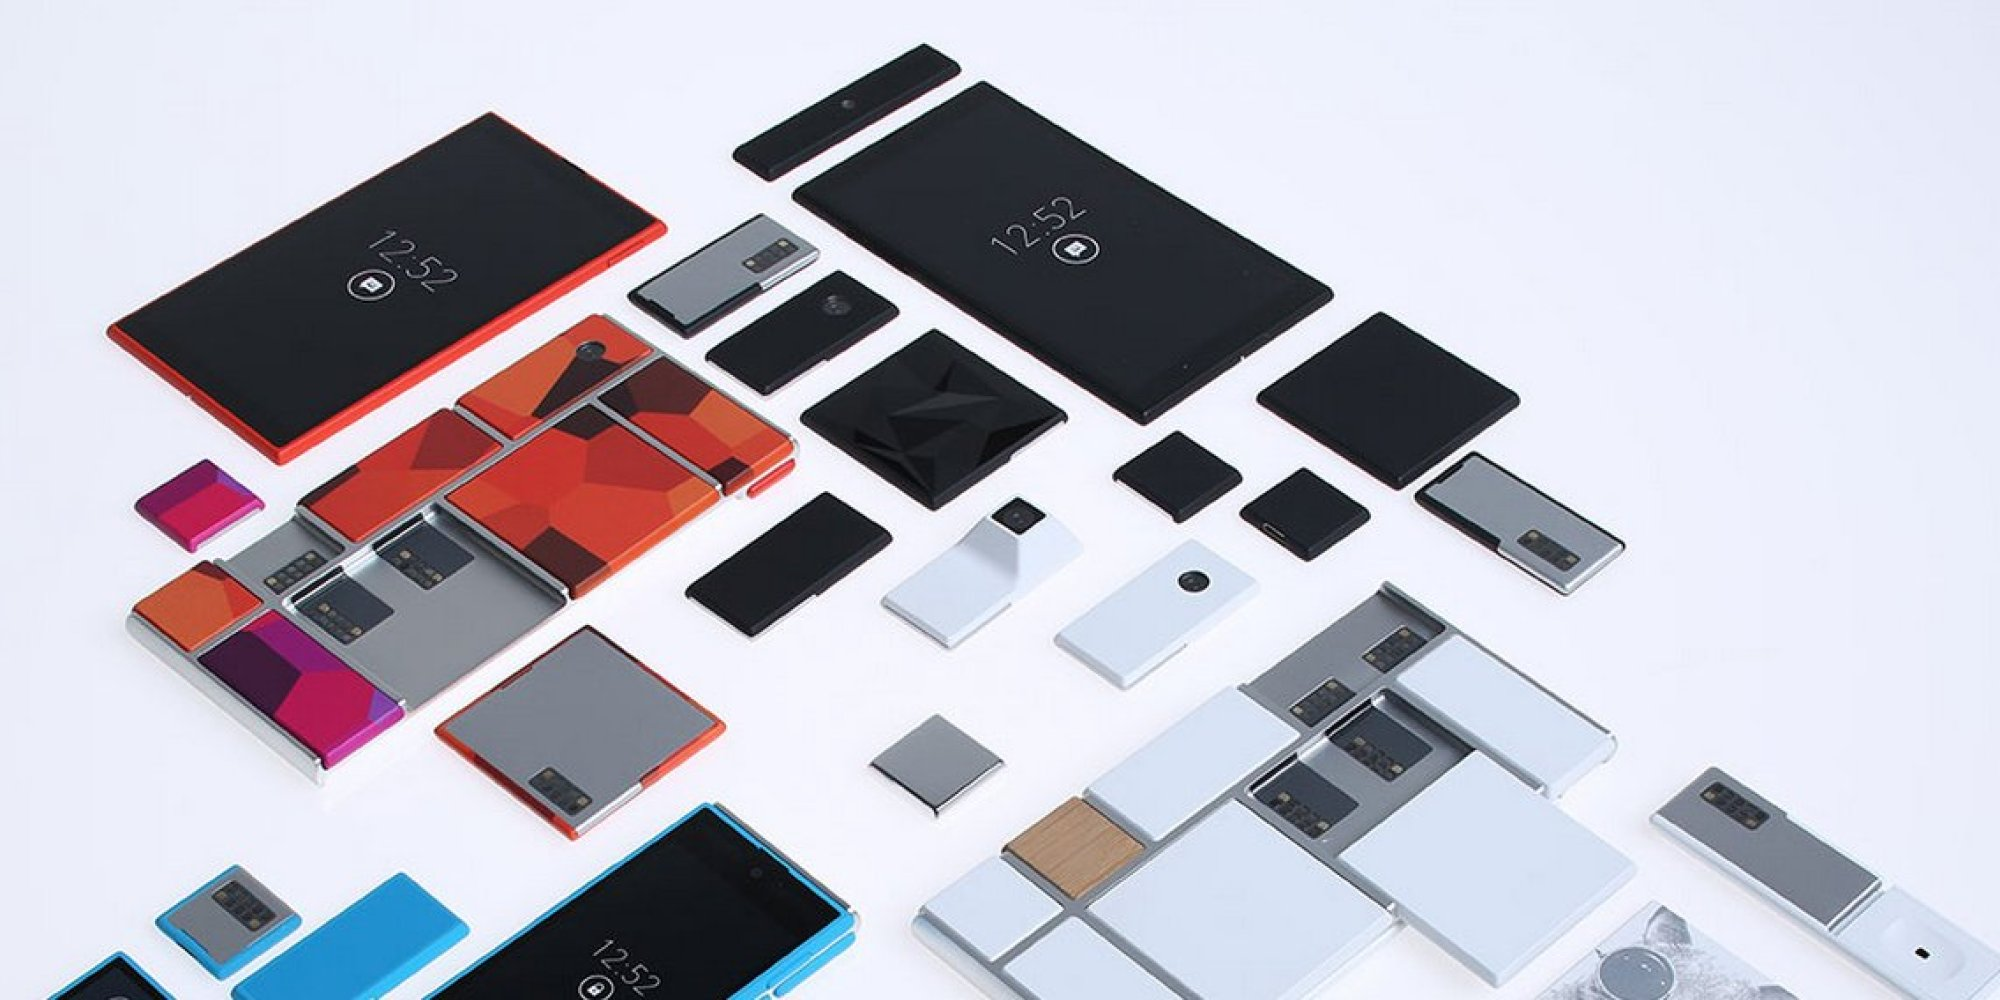 Project Ara: Motorola Teams up with Phone Bloks